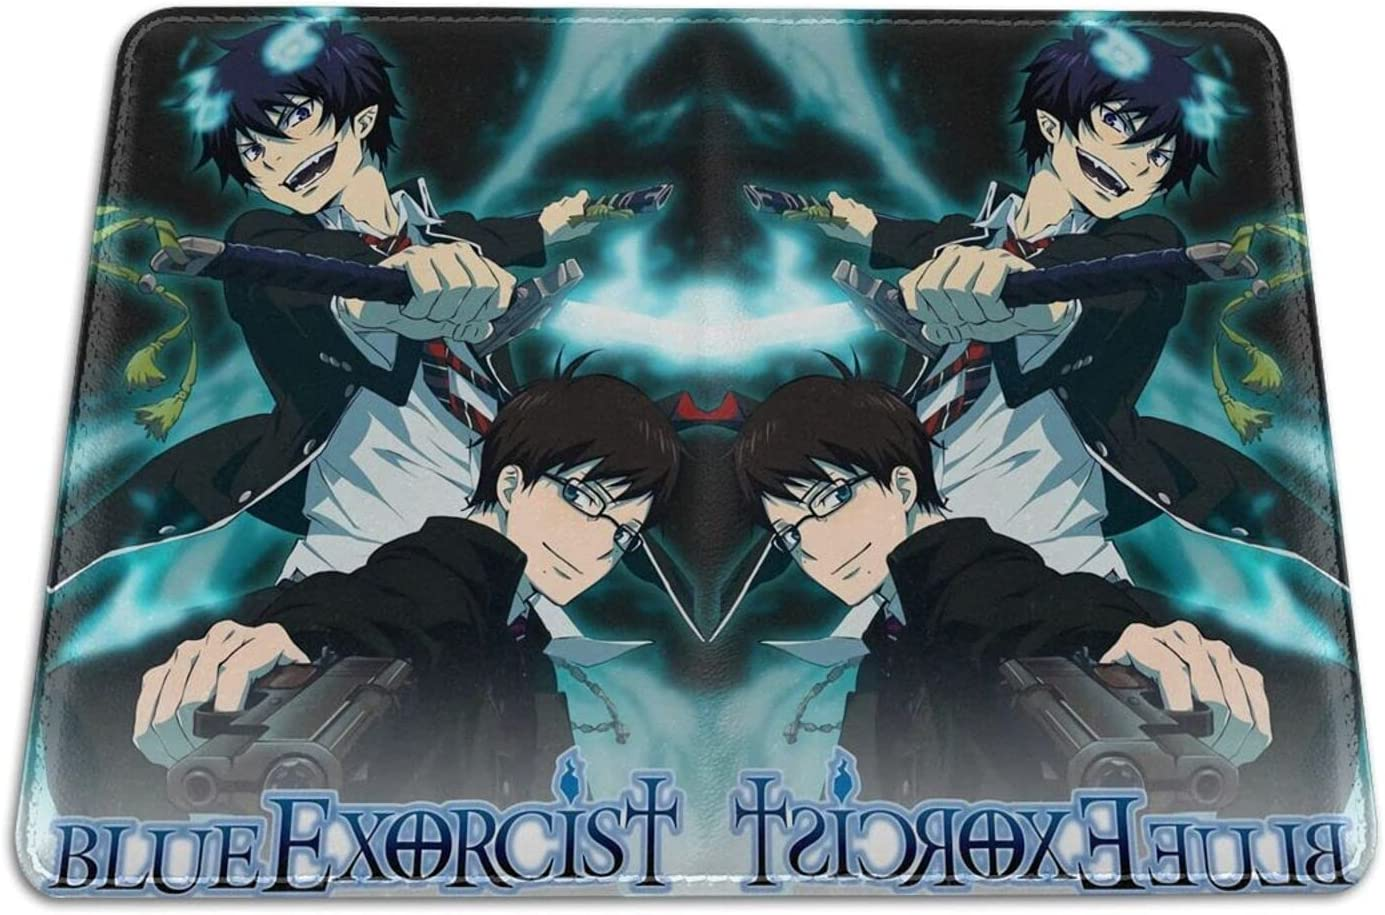 Blue Exorcist 5% OFF Translated Anime Passport Cover With Card Holder Slots Wallet